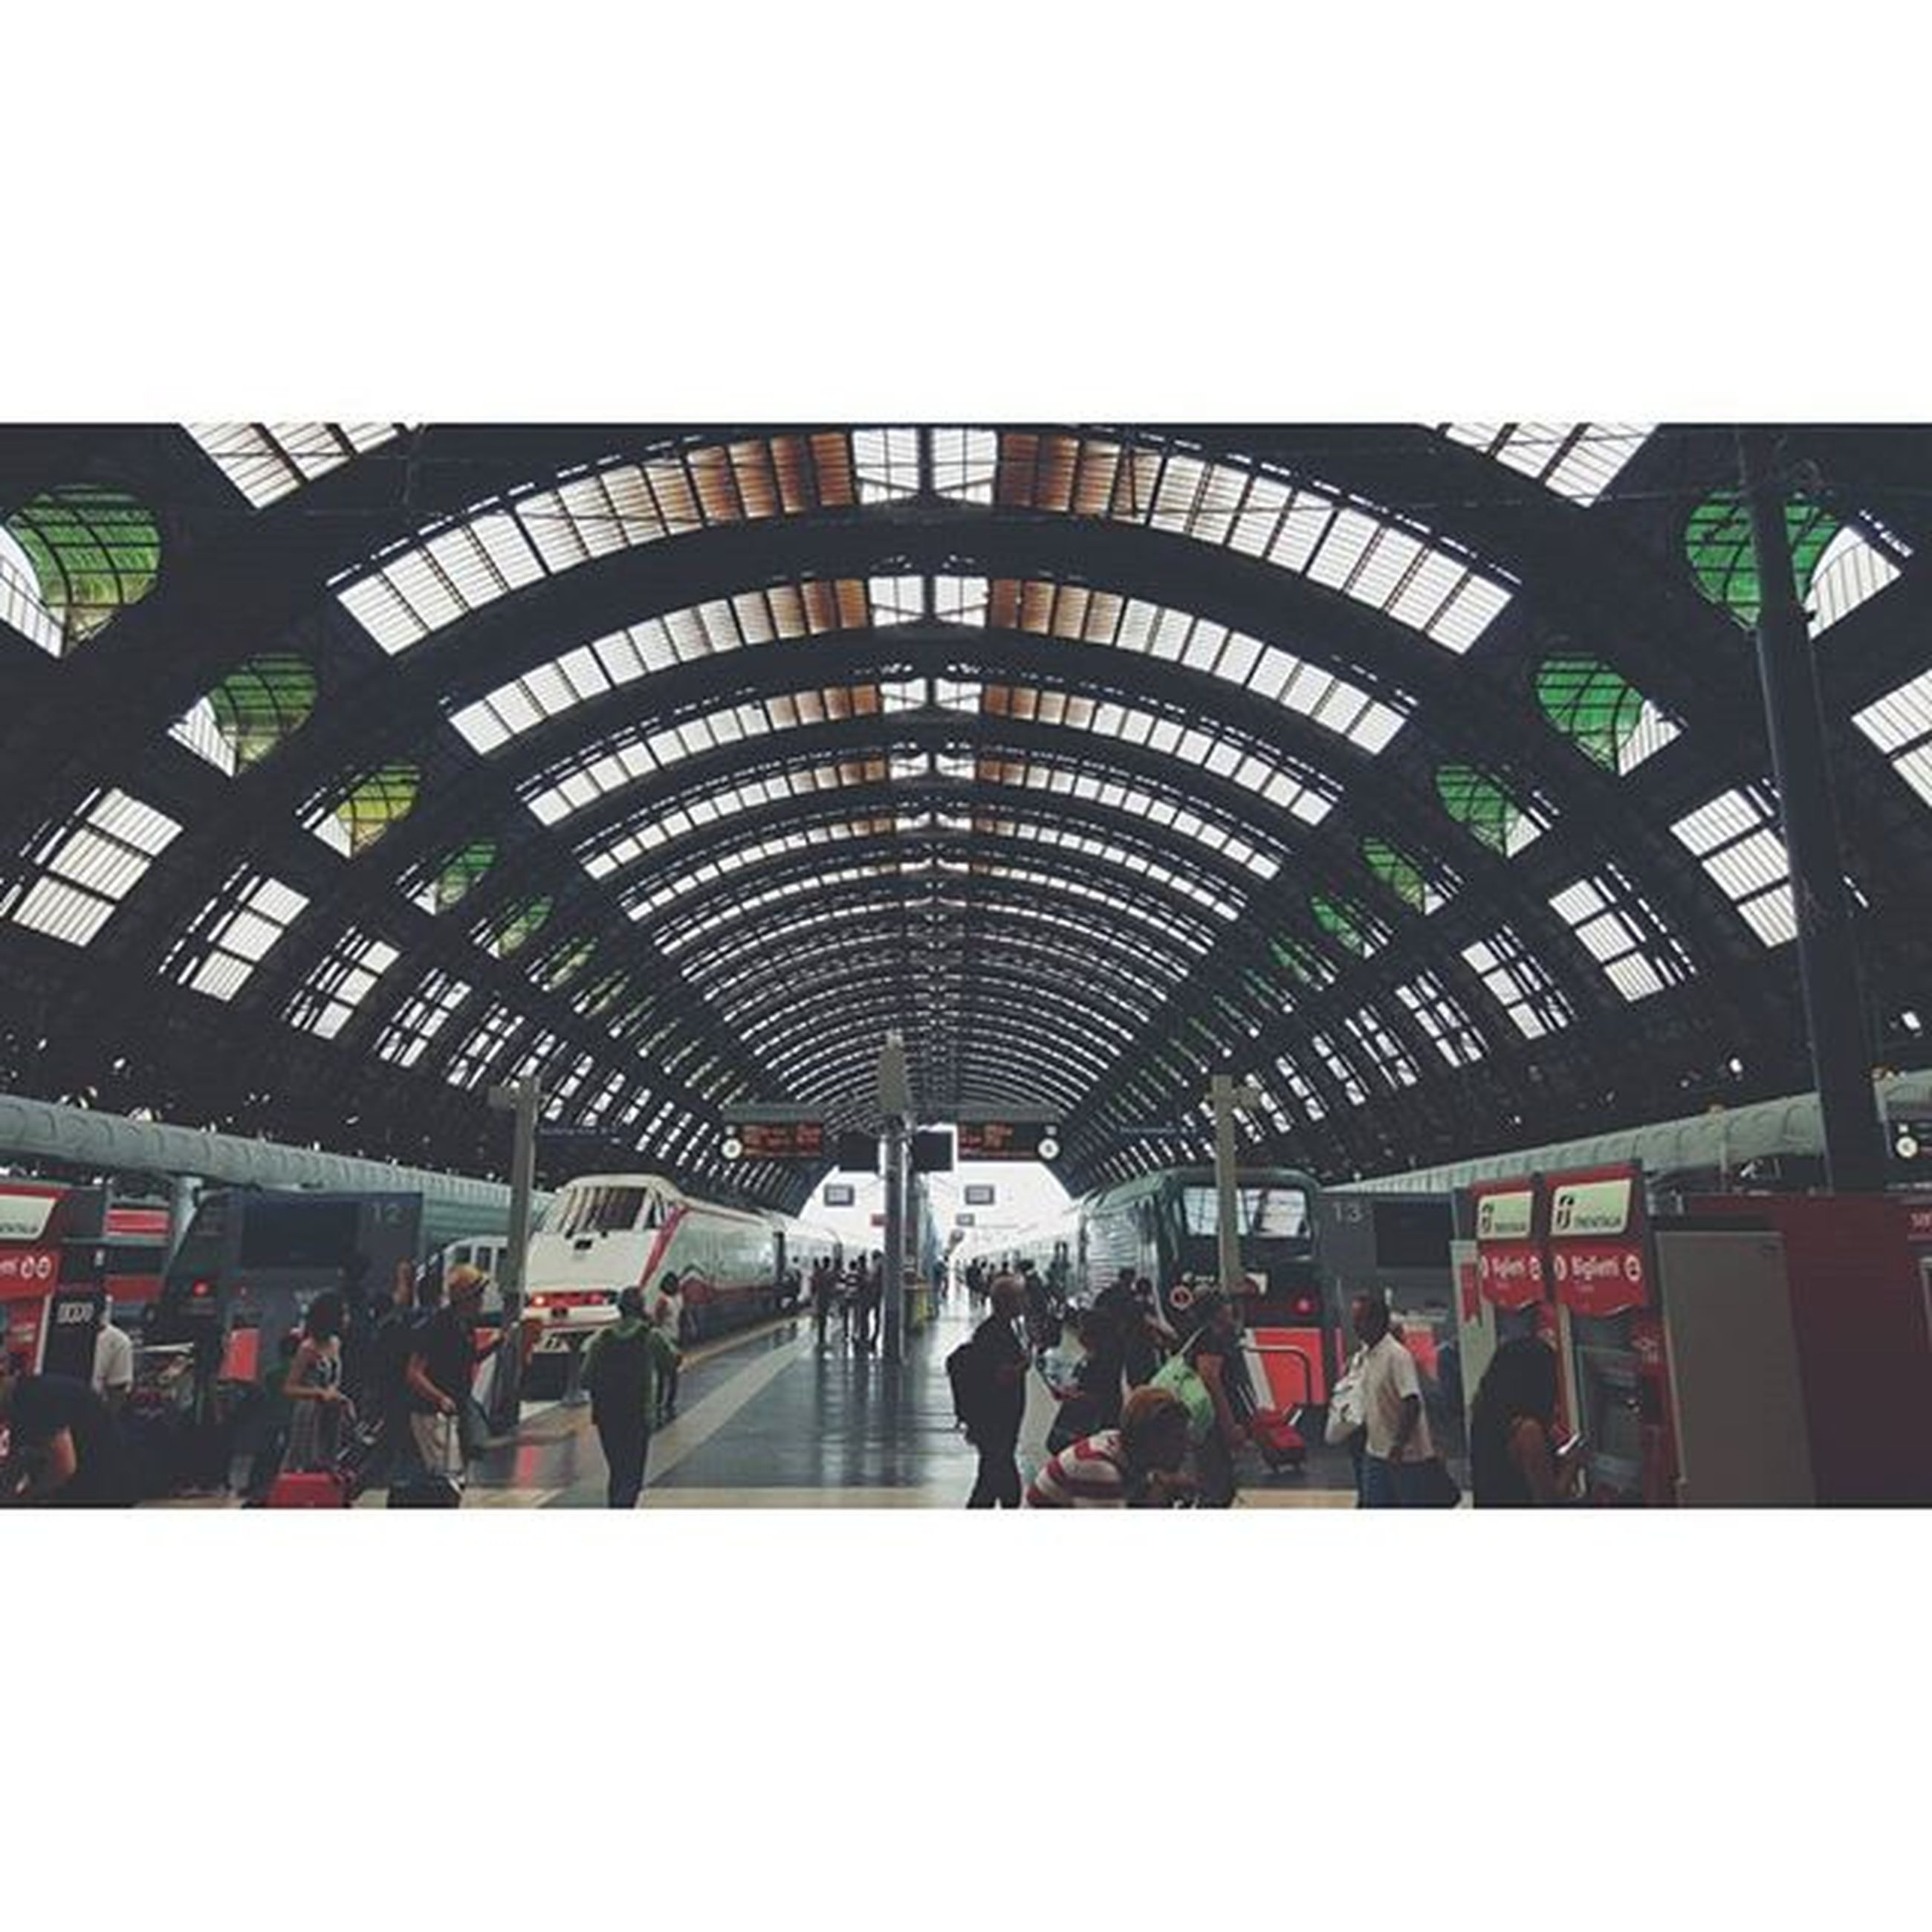 indoors, large group of people, men, transfer print, architecture, railroad station, built structure, person, public transportation, transportation, lifestyles, ceiling, railroad station platform, auto post production filter, walking, city life, travel, rail transportation, leisure activity